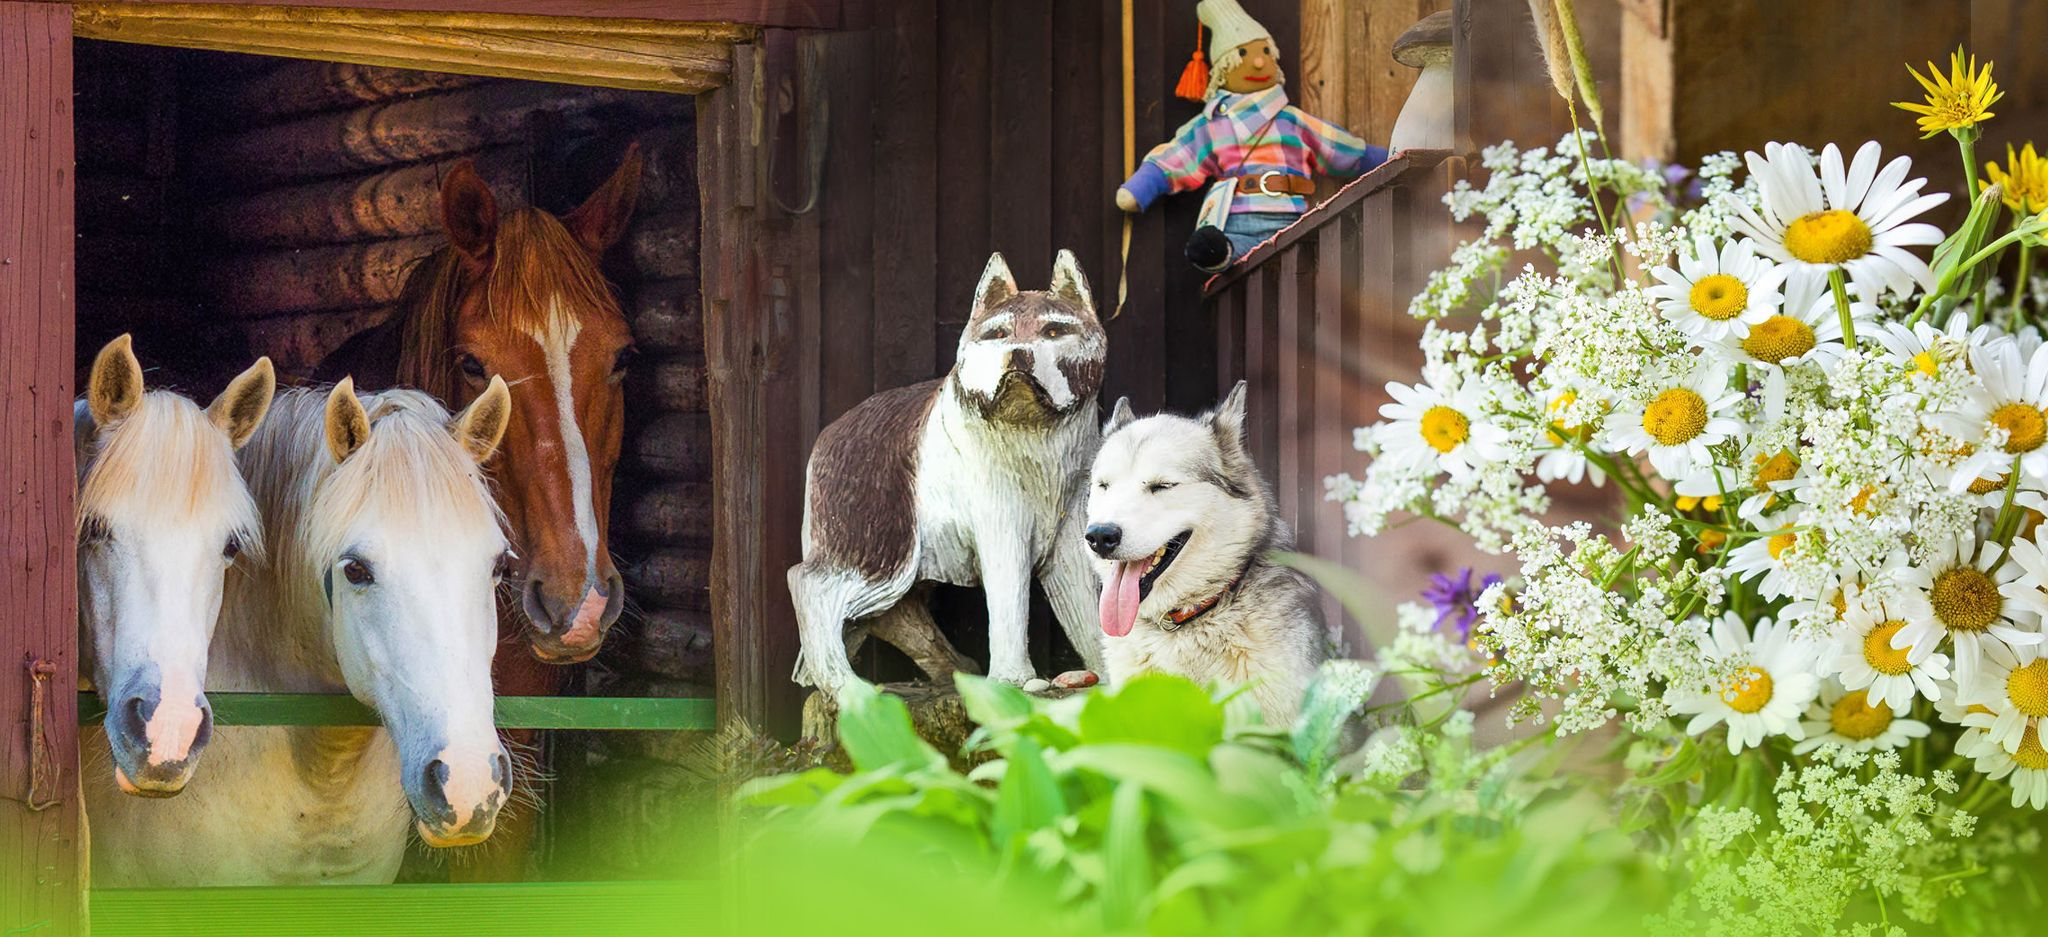 Visit family owned sled dogs and agri farm in Estonian